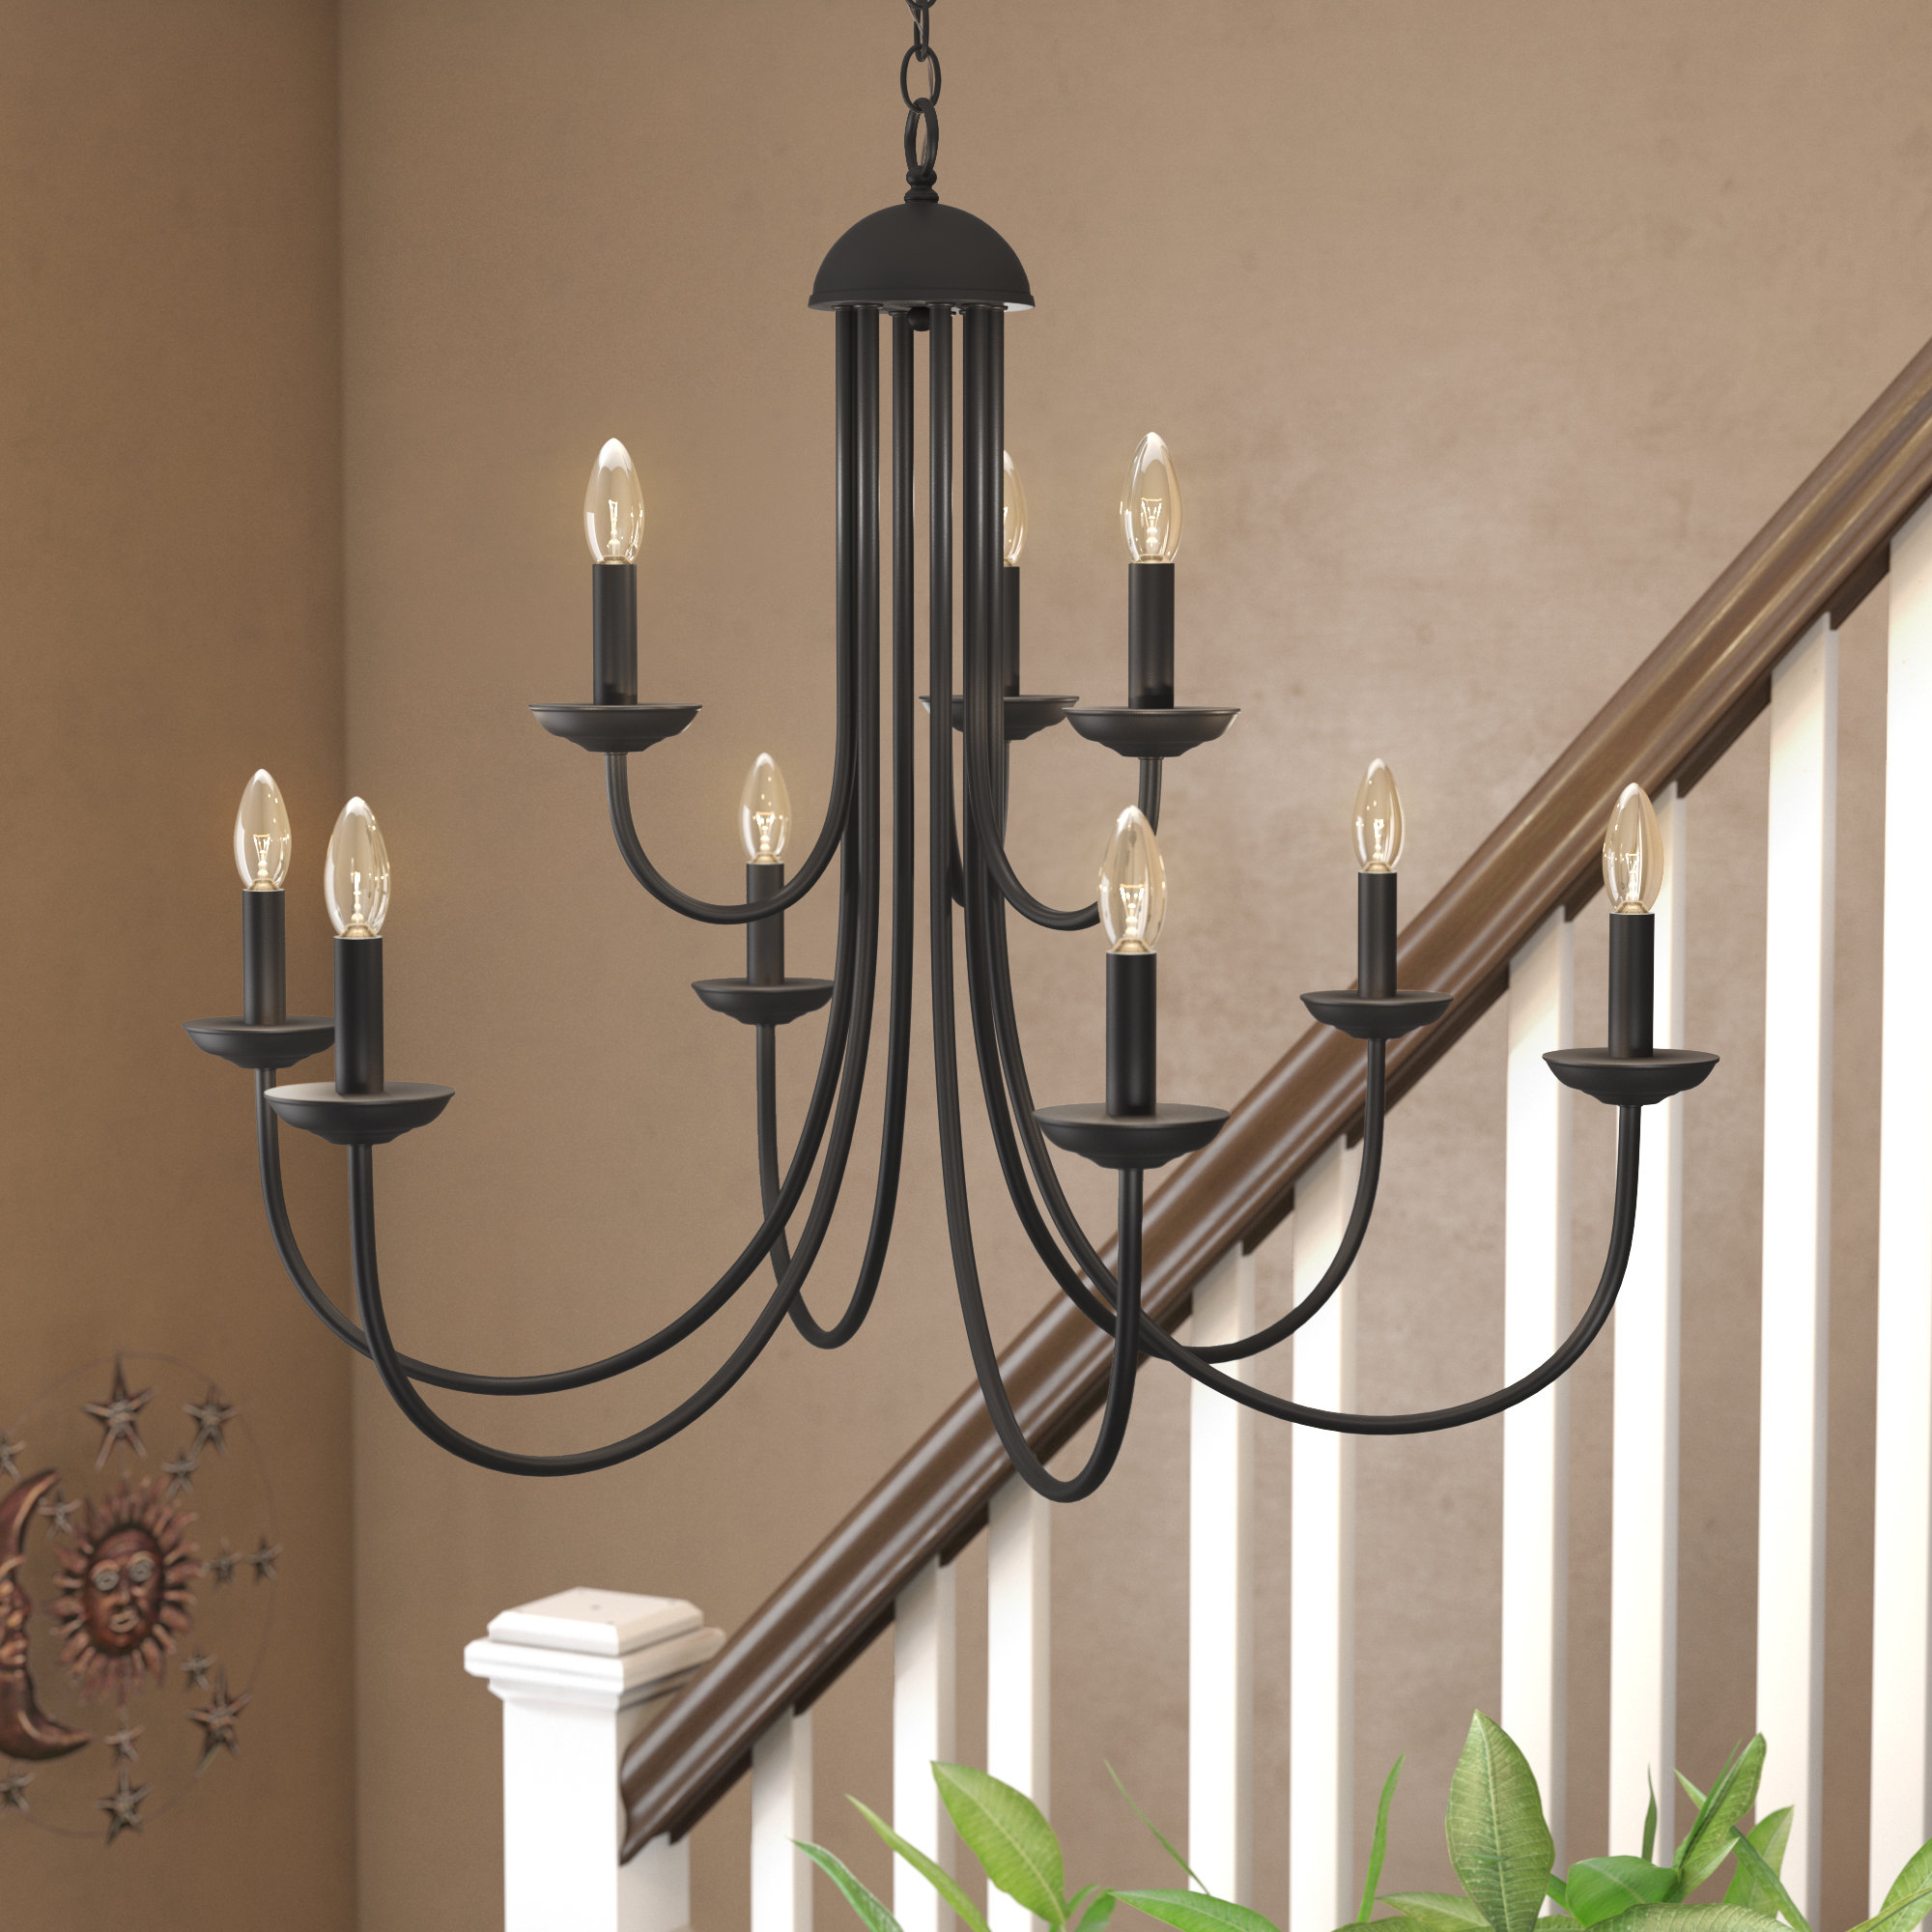 Newest Farmhouse & Rustic Charlton Home Chandeliers (View 18 of 20)